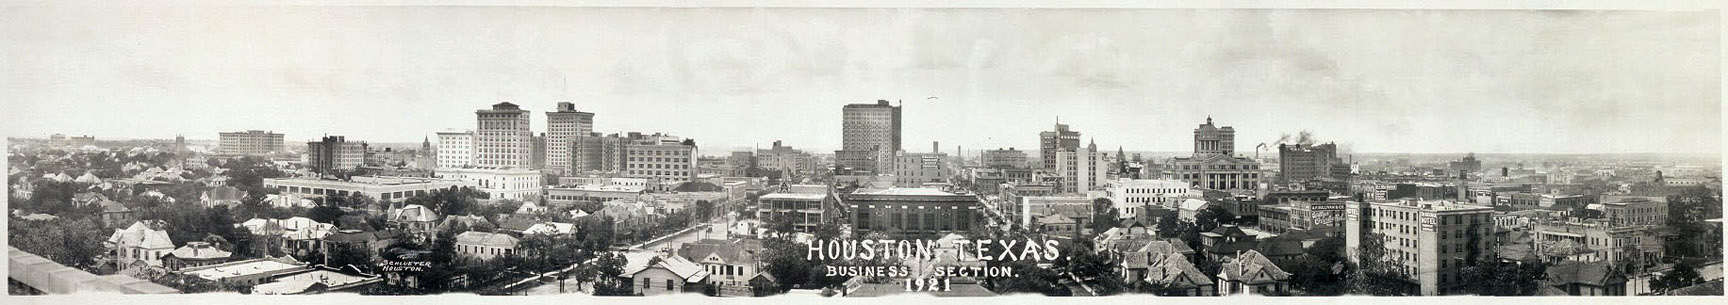 HoustonPanoramic1921